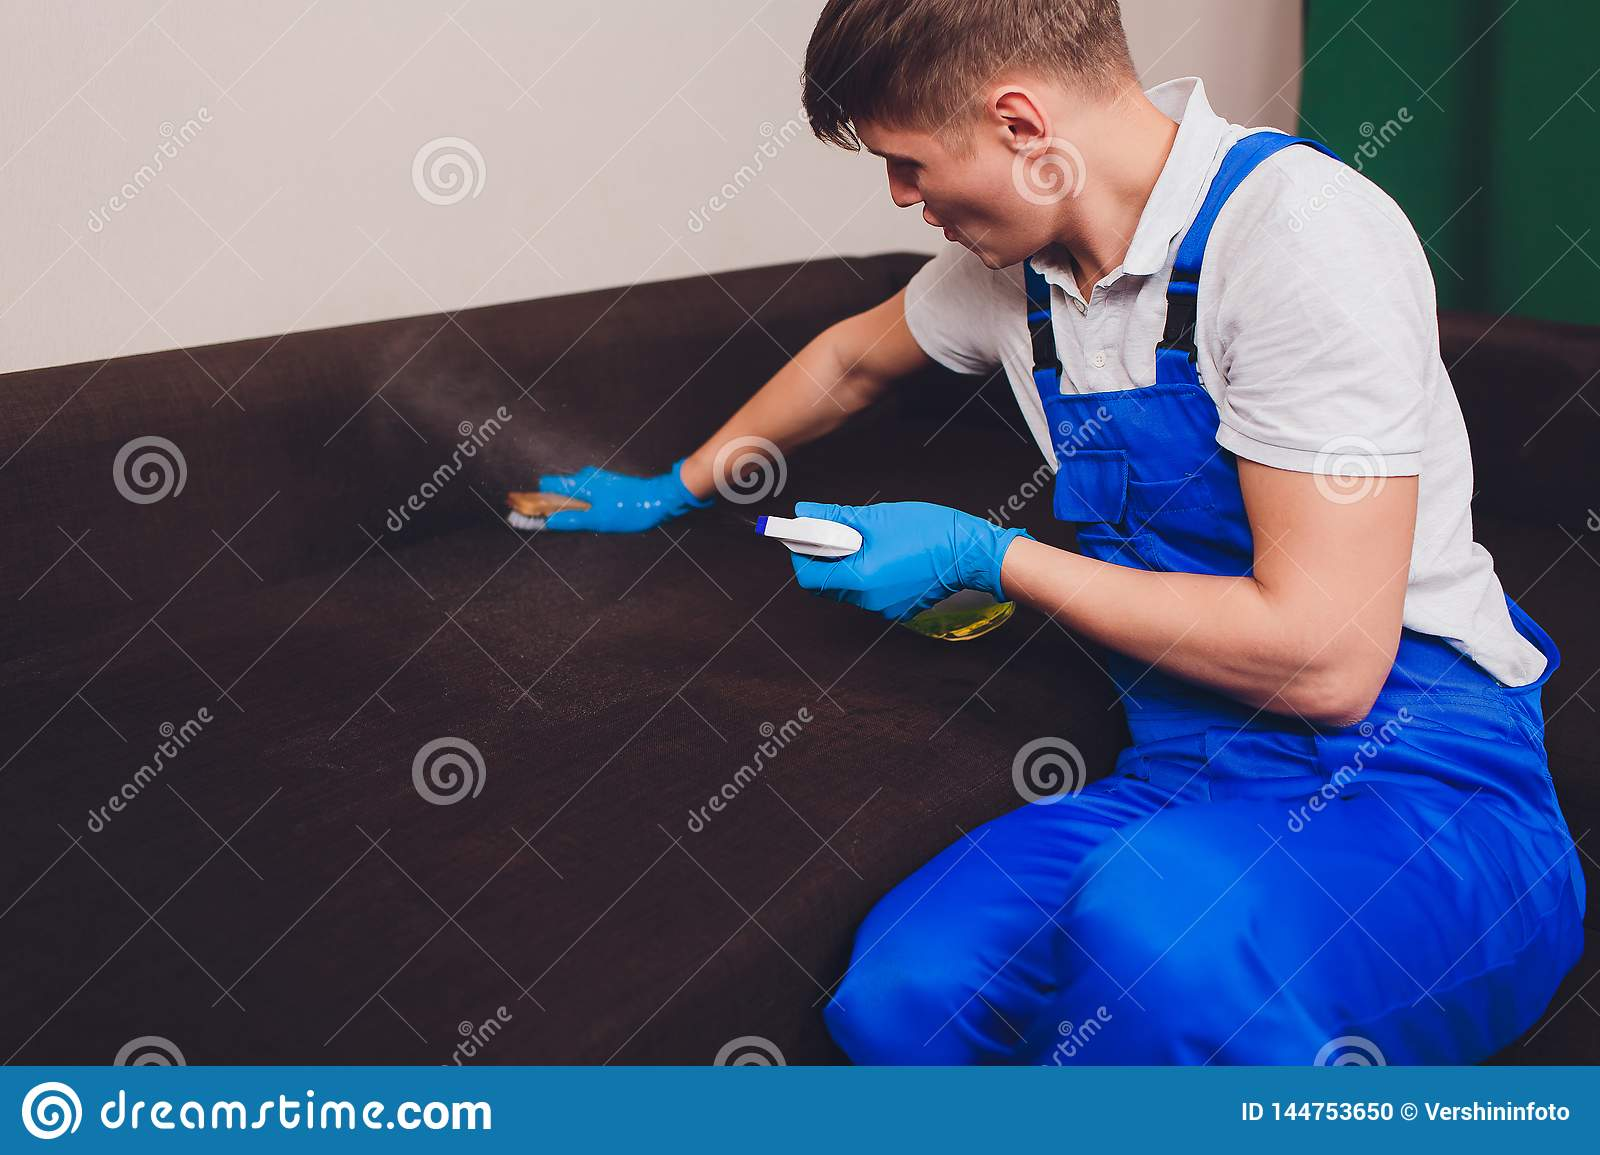 Cropped image. Cleaning concept. Male hand in blue protective gloves cleaning sofa couch in the room.